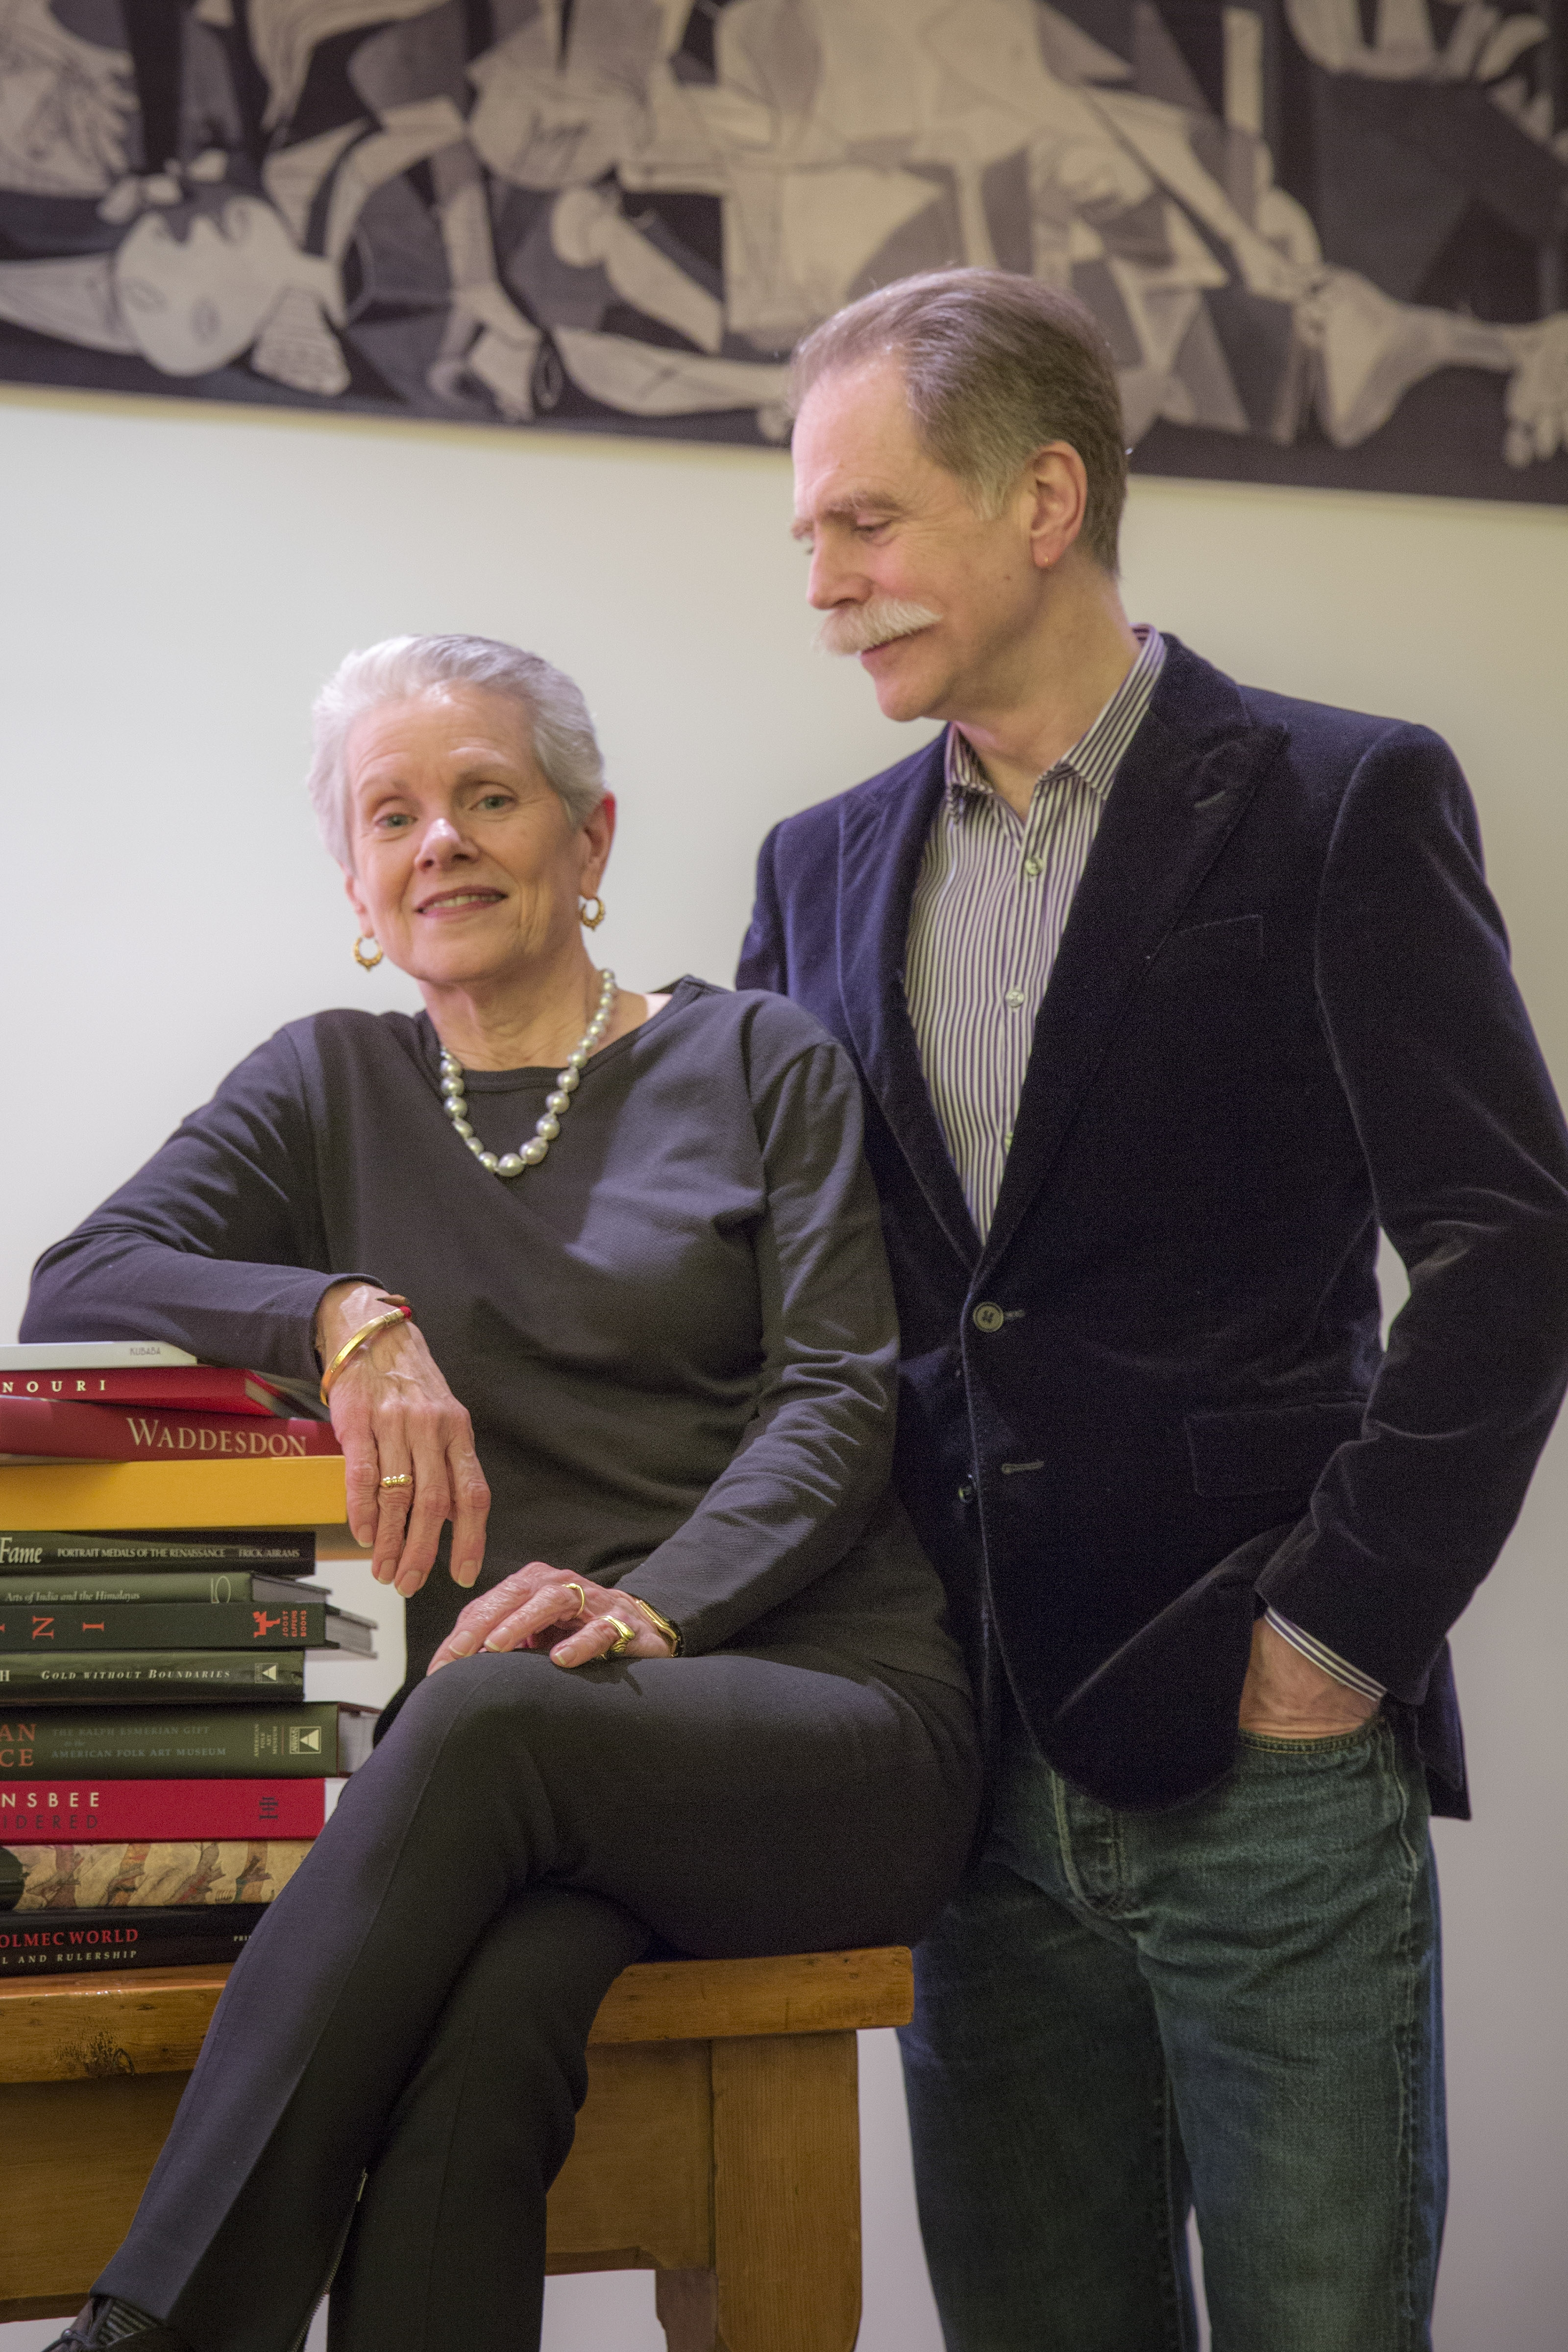 Dianne Dubler and her husband, the photographer John Taylor, whose wealthy clients pay them to publish books of personalized photography memorializing their homes, in New wYork, Dec. 11, 2014. The ultimate personal keepsakes cost $200,000 for an order of 200 books, providing a lasting visual record of a home. (Tony Cenicola/The)